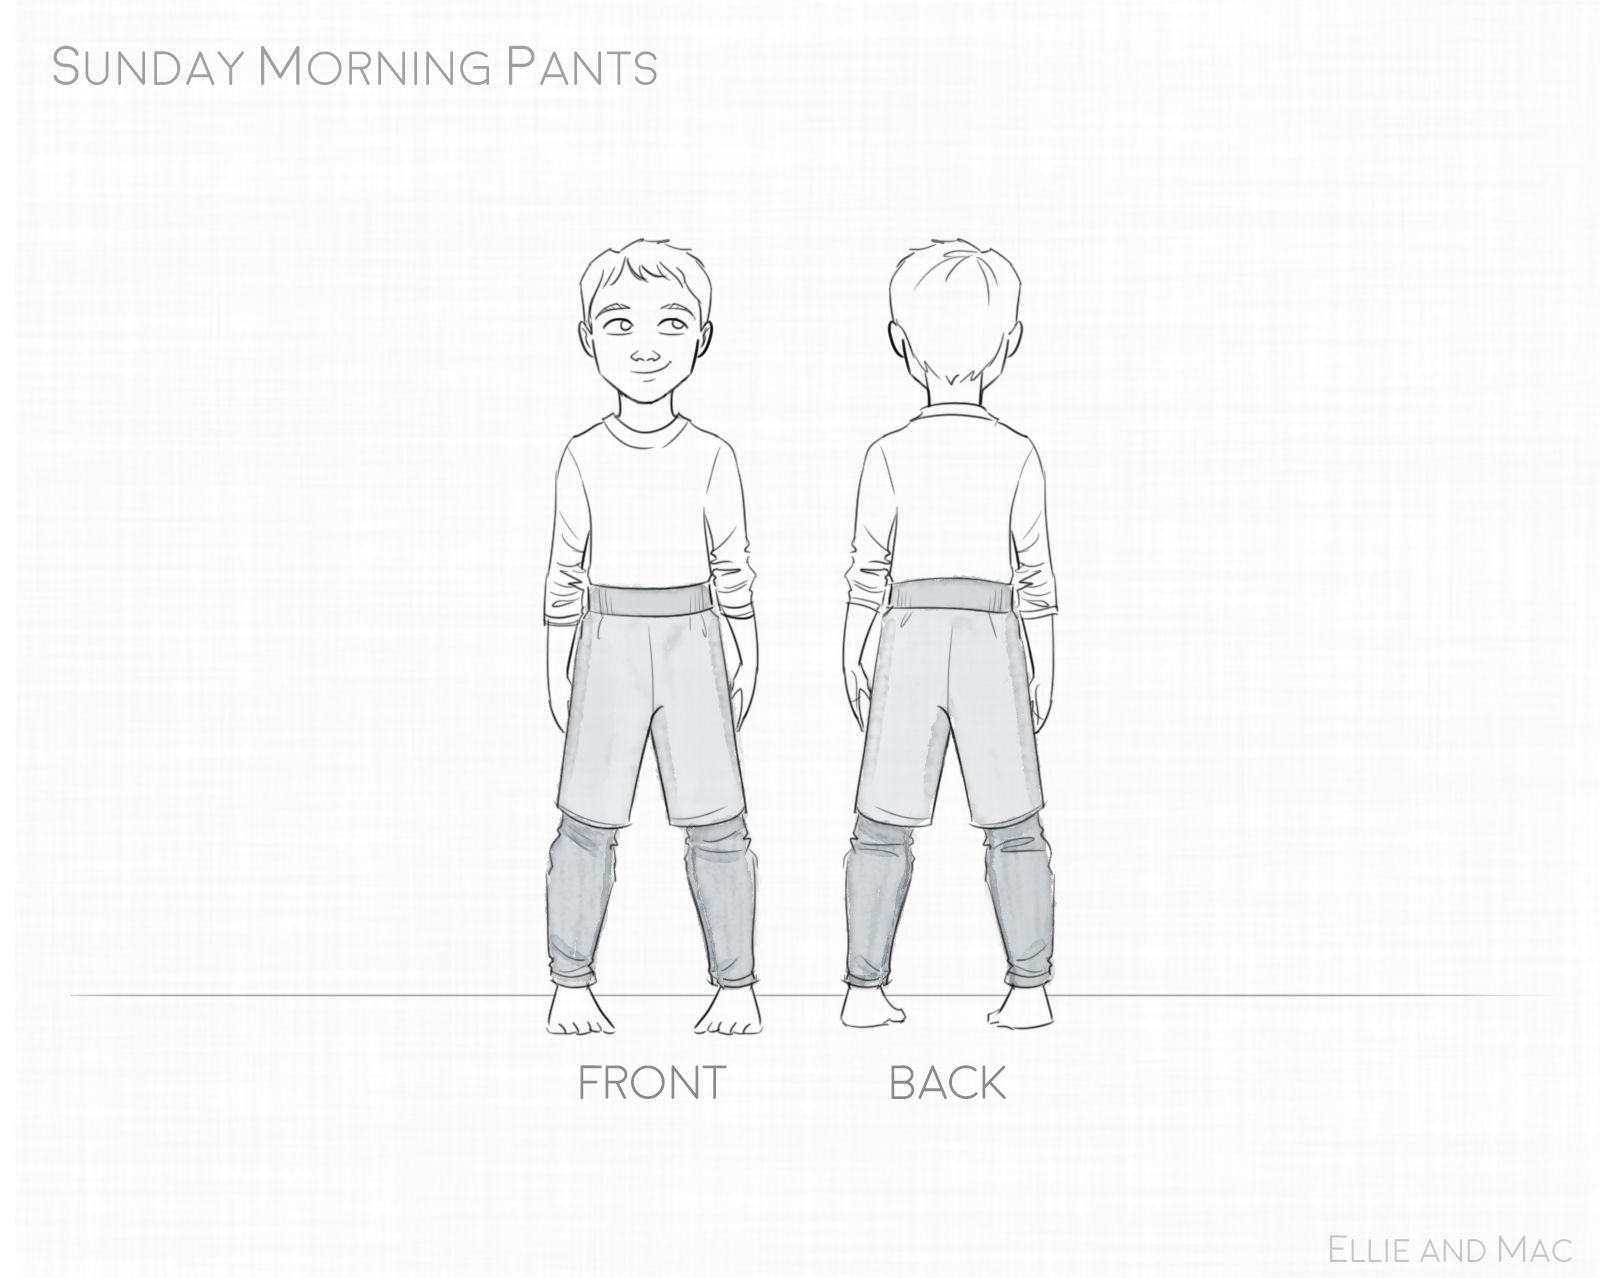 Sunday Morning Sweats Pattern Wacky With Images Children